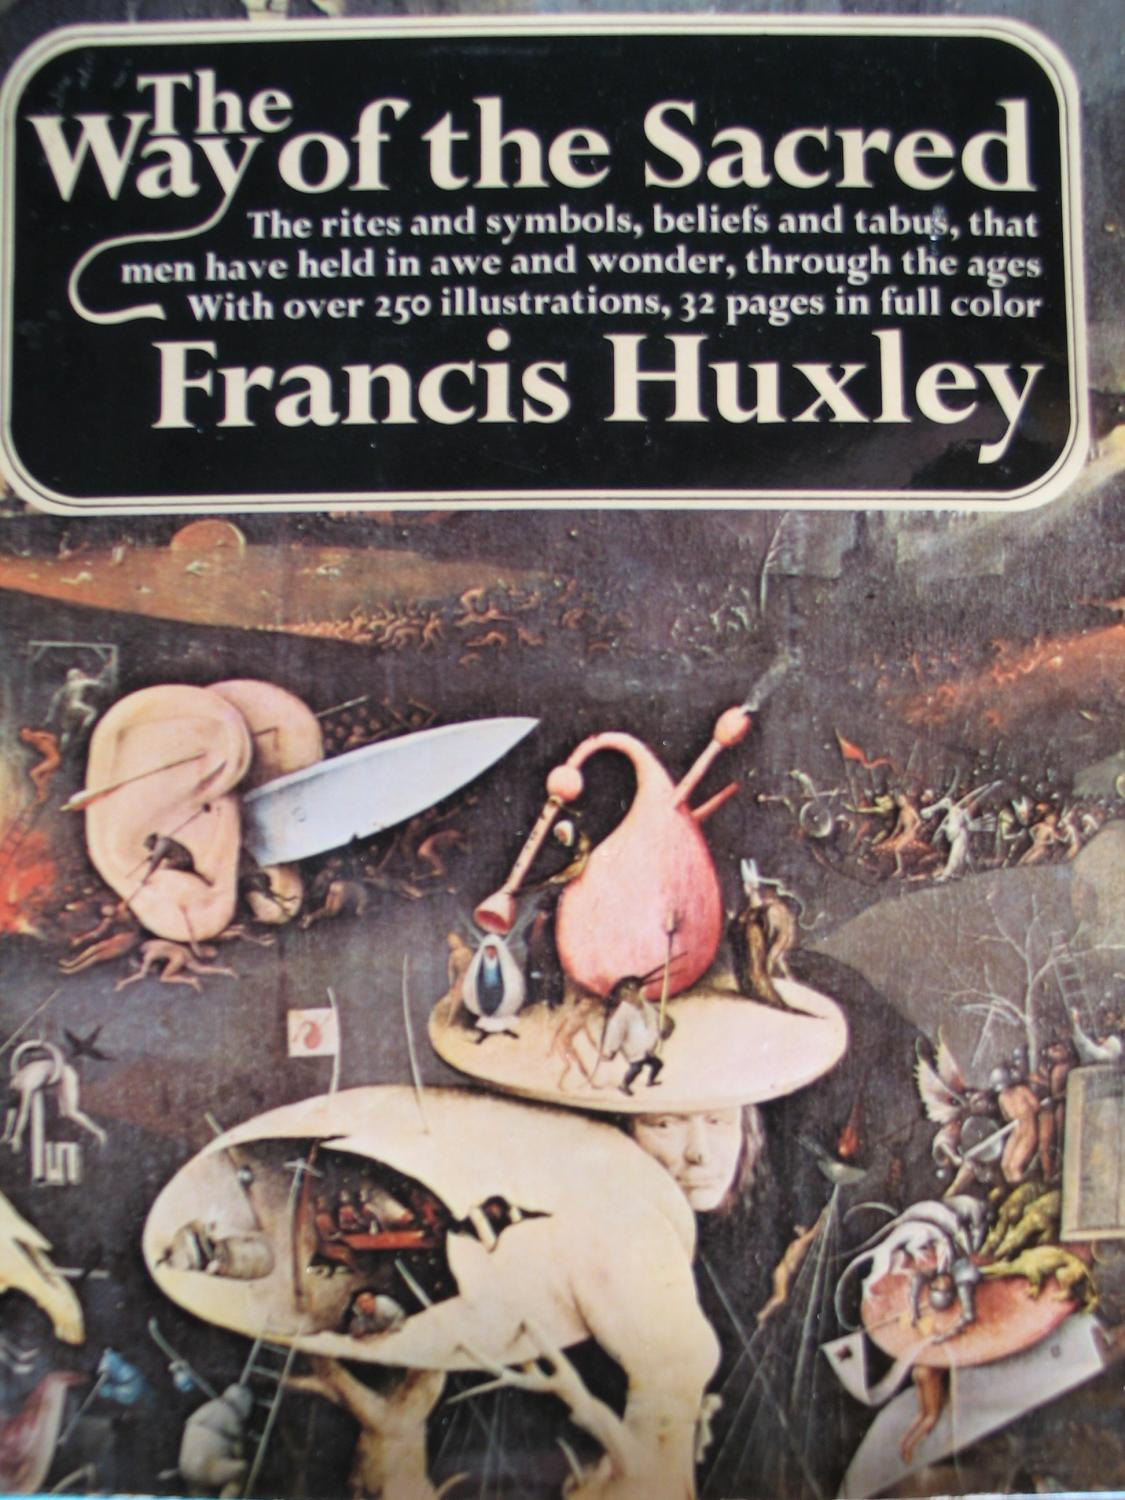 The Way of the Sacred - Huxley, Francis